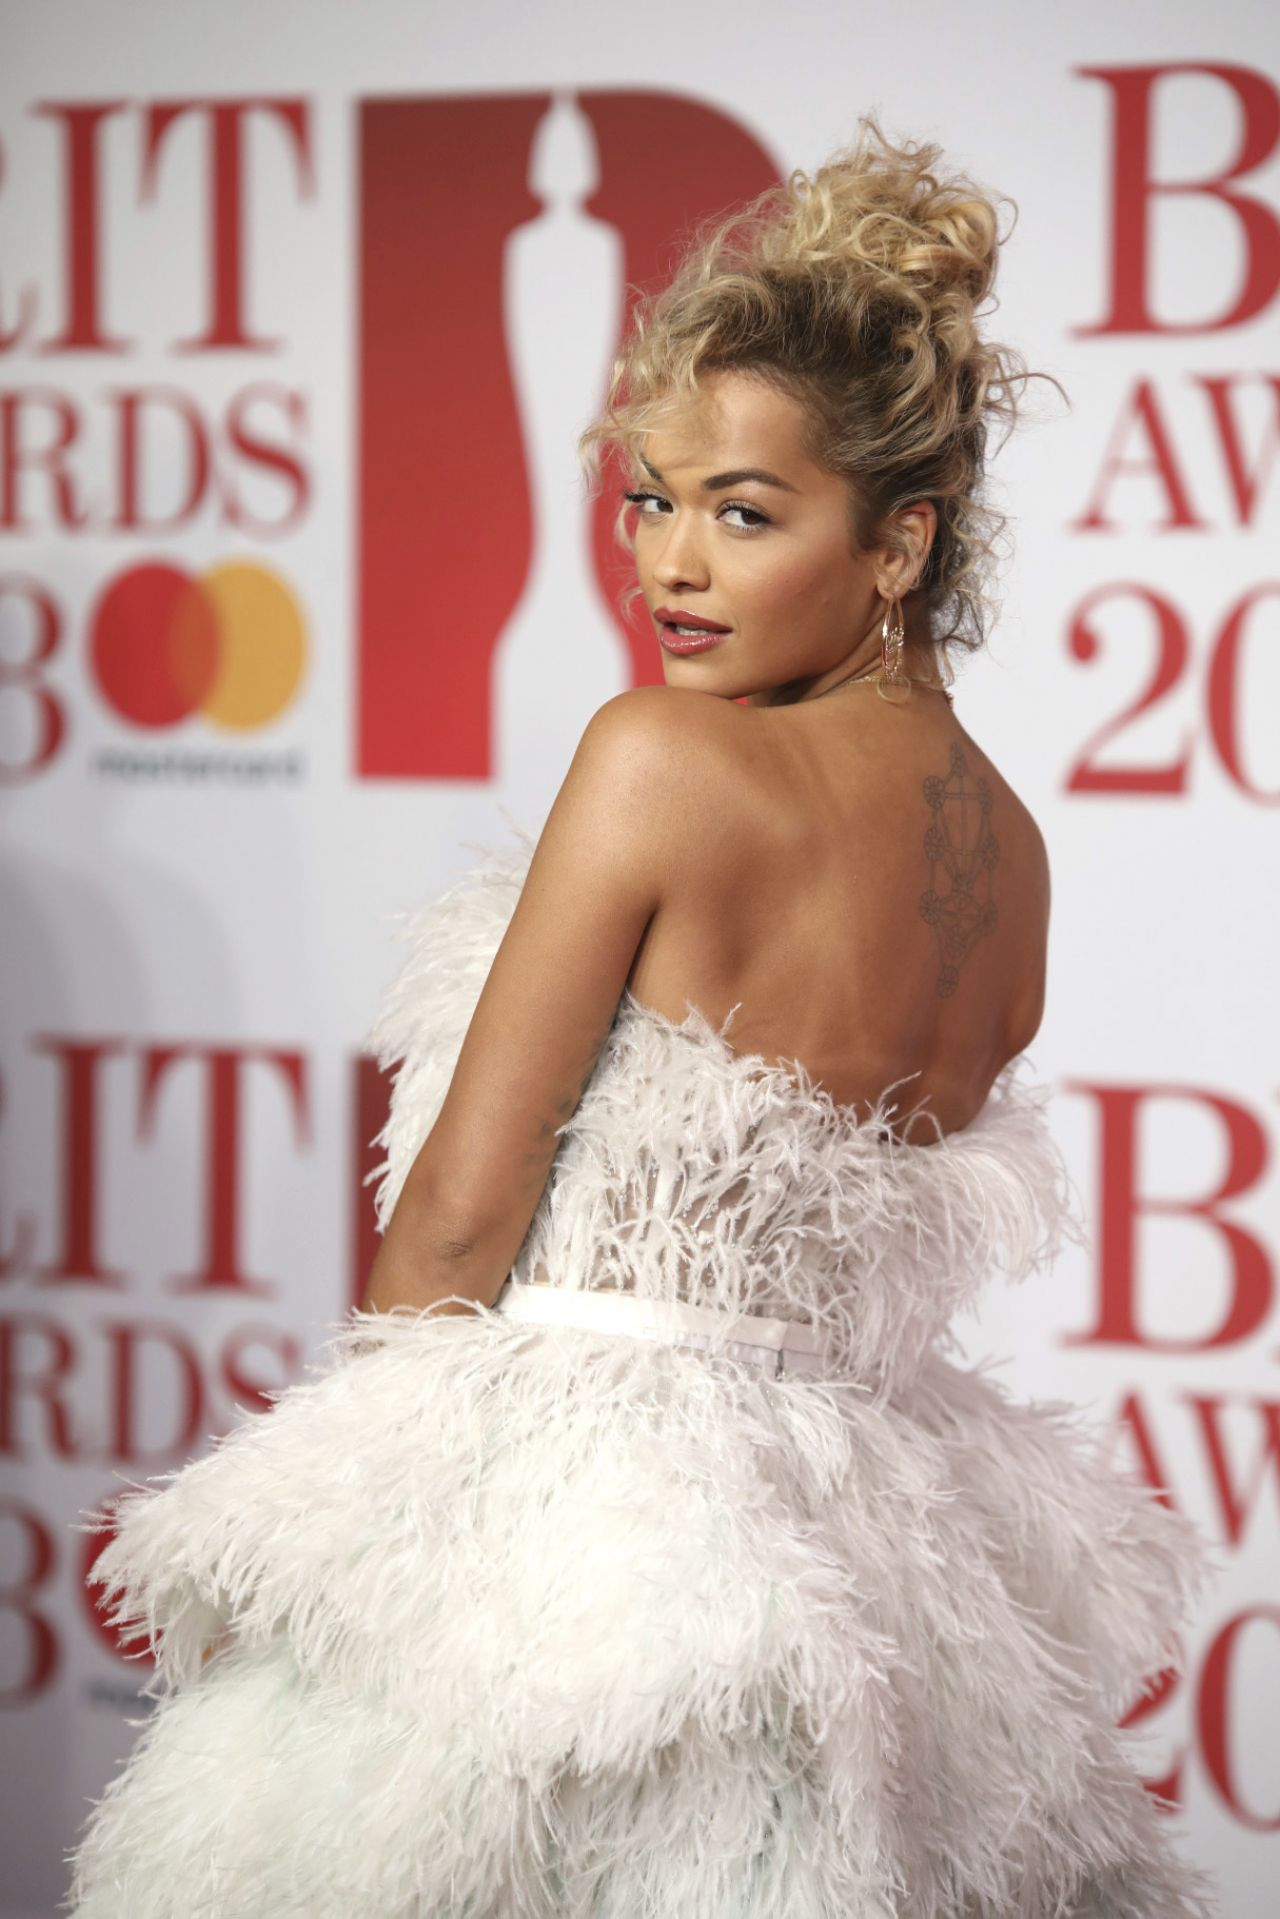 Rita ora brit awards - 3 part 1